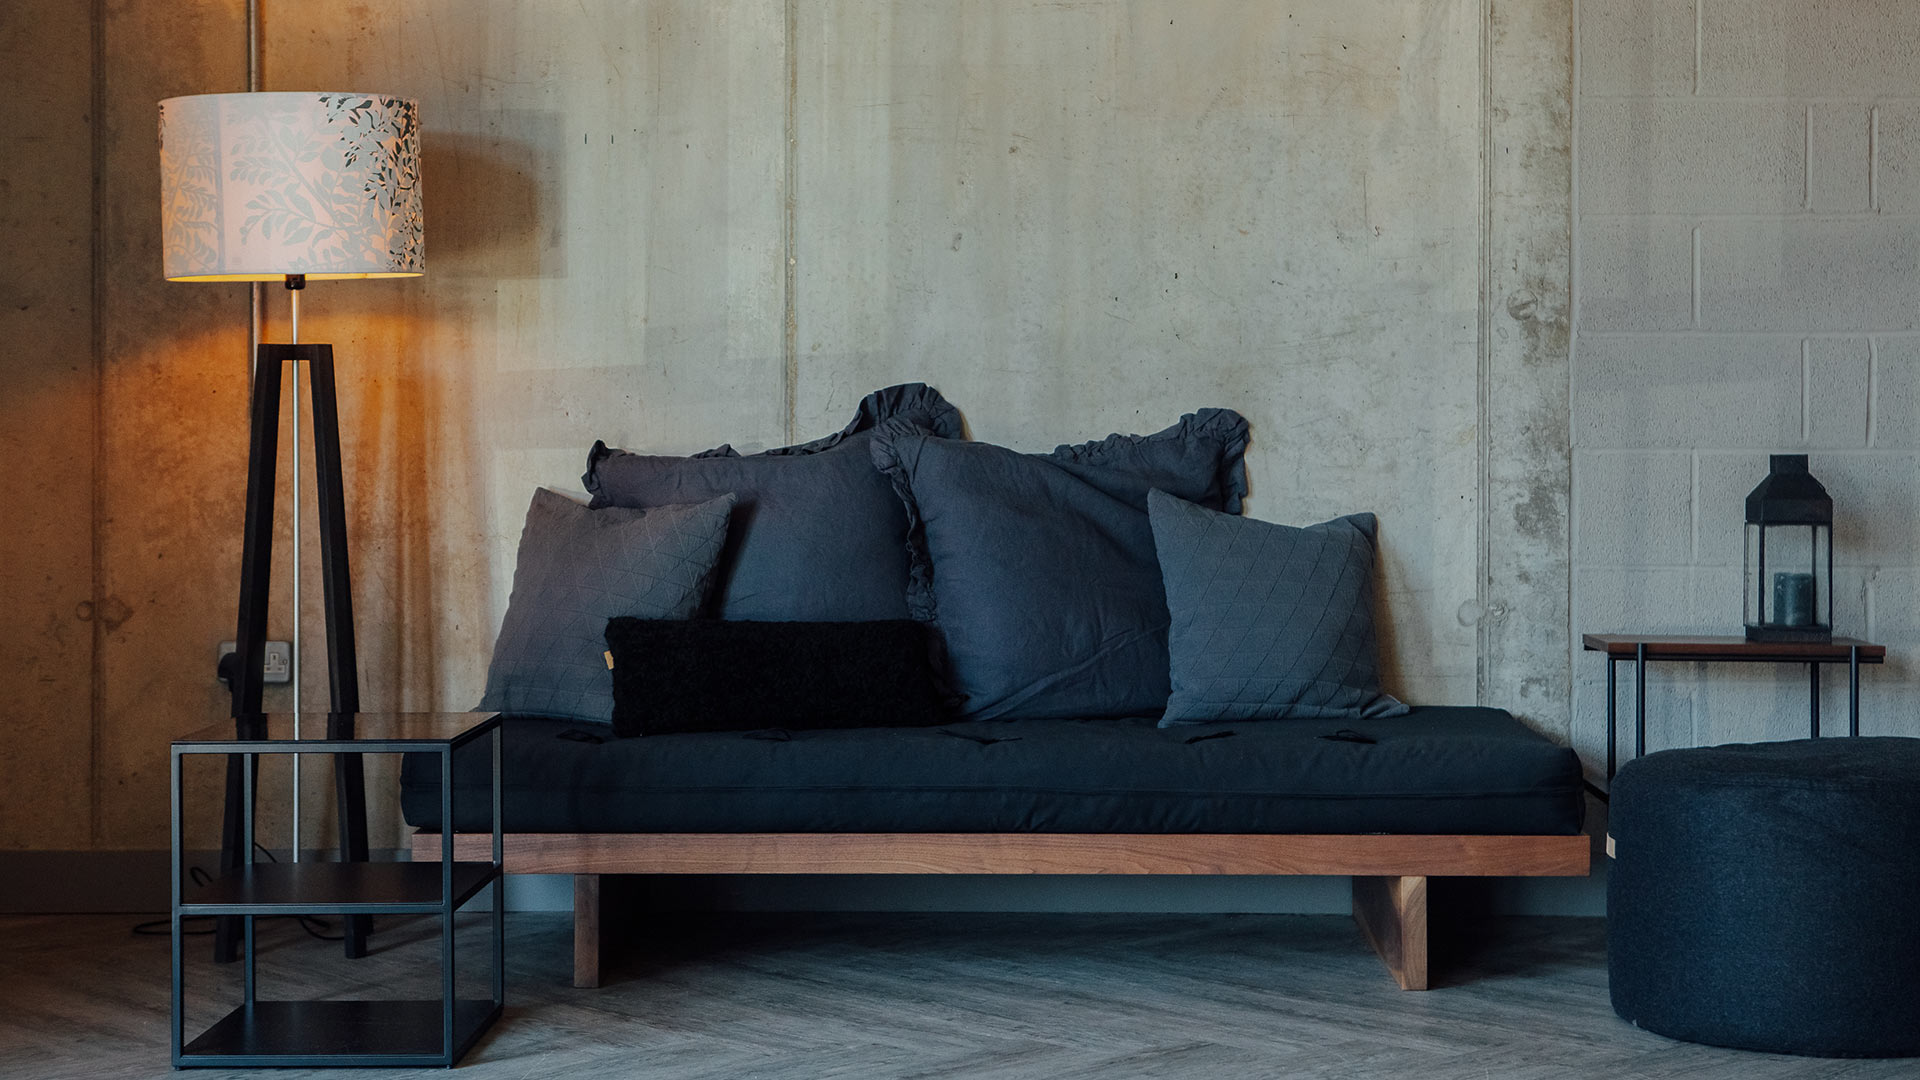 Hand made solid wood kyoto daybed with slate grey cushions and black futon mattress